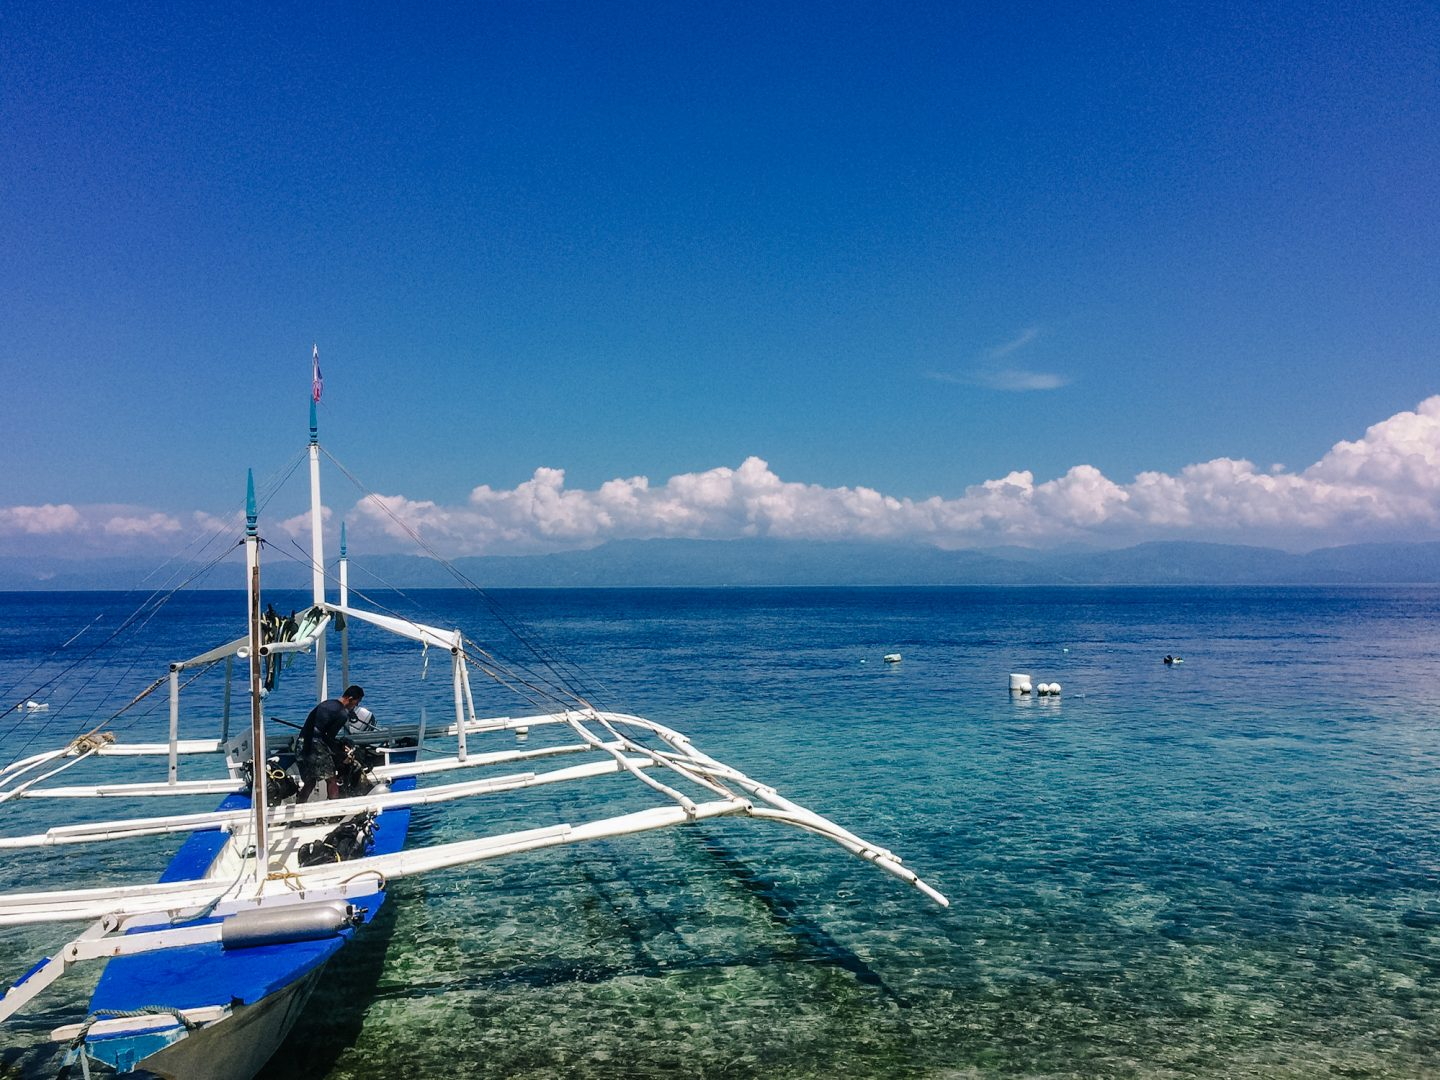 From Manila to Cebu – a journey through the Philippines